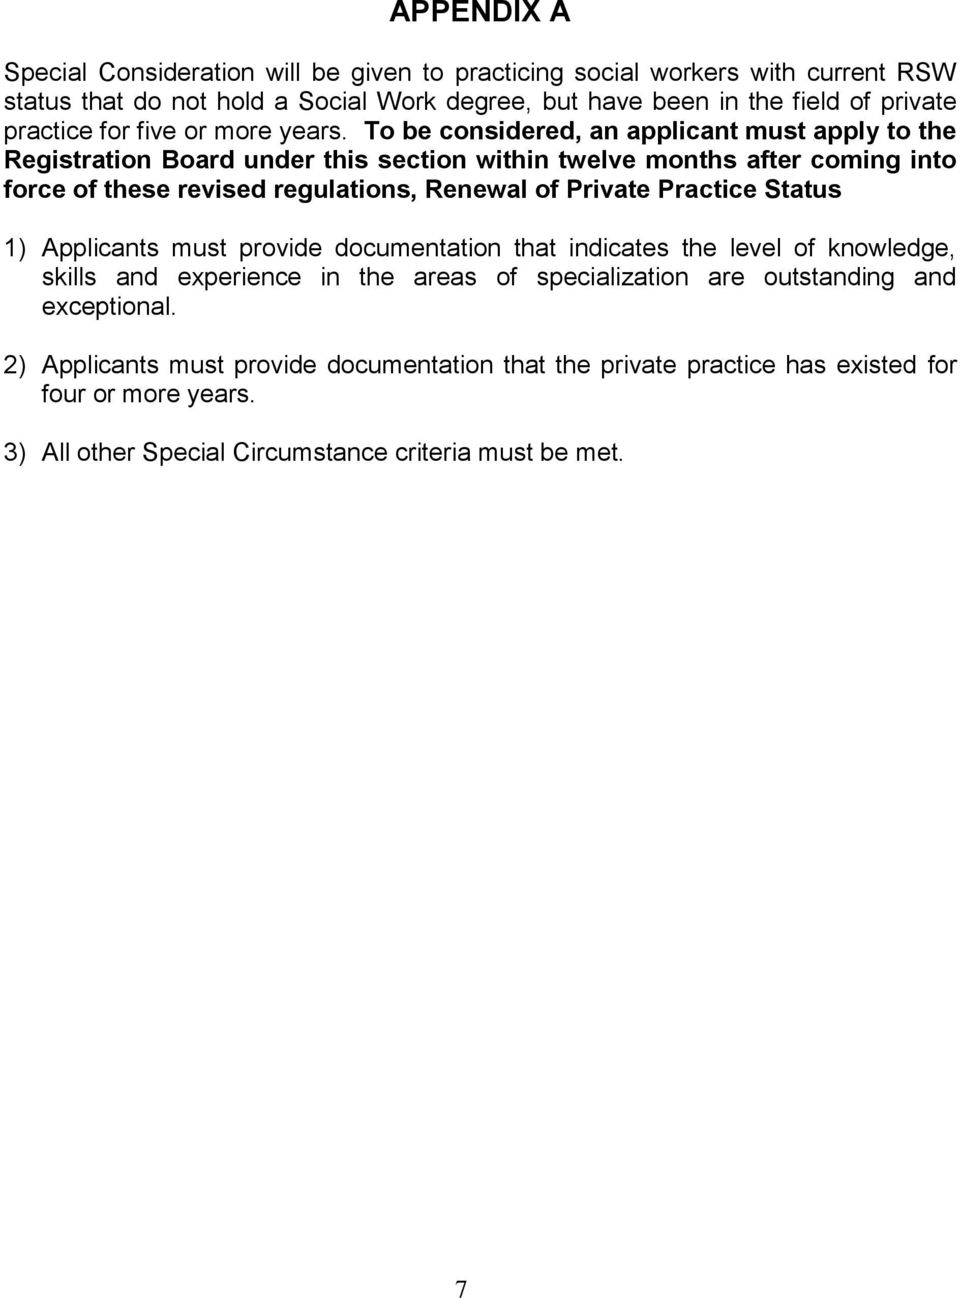 To be considered, an applicant must apply to the Registration Board under this section within twelve months after coming into force of these revised regulations, Renewal of Private